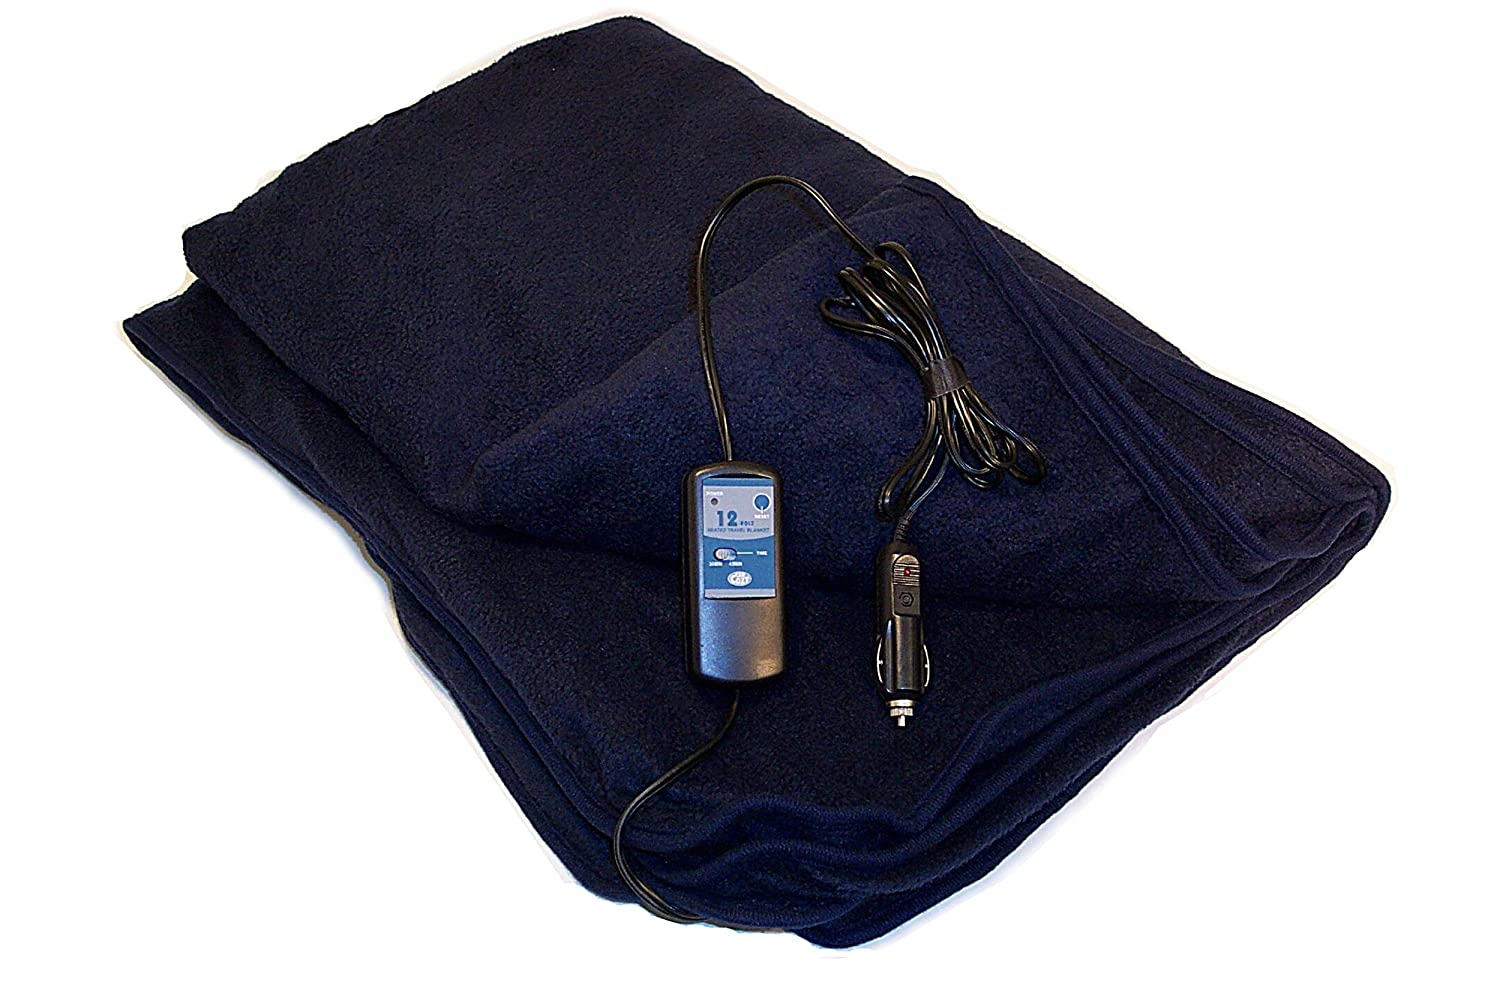 Car Cozy Heated Travel Blanket by Trillium Worldwide